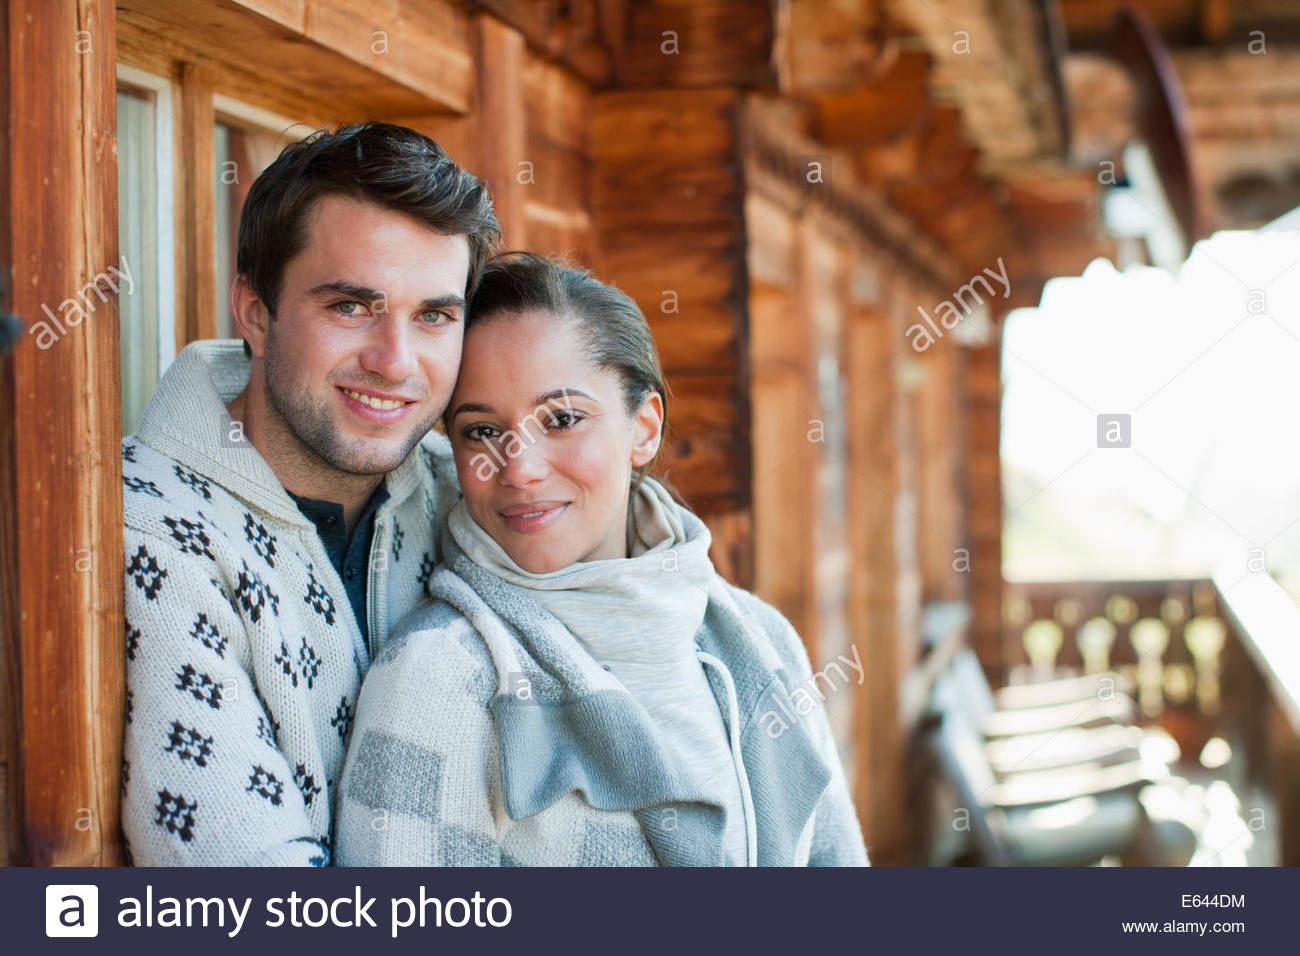 Portrait of smiling couple hugging on cabin porch Photo Stock